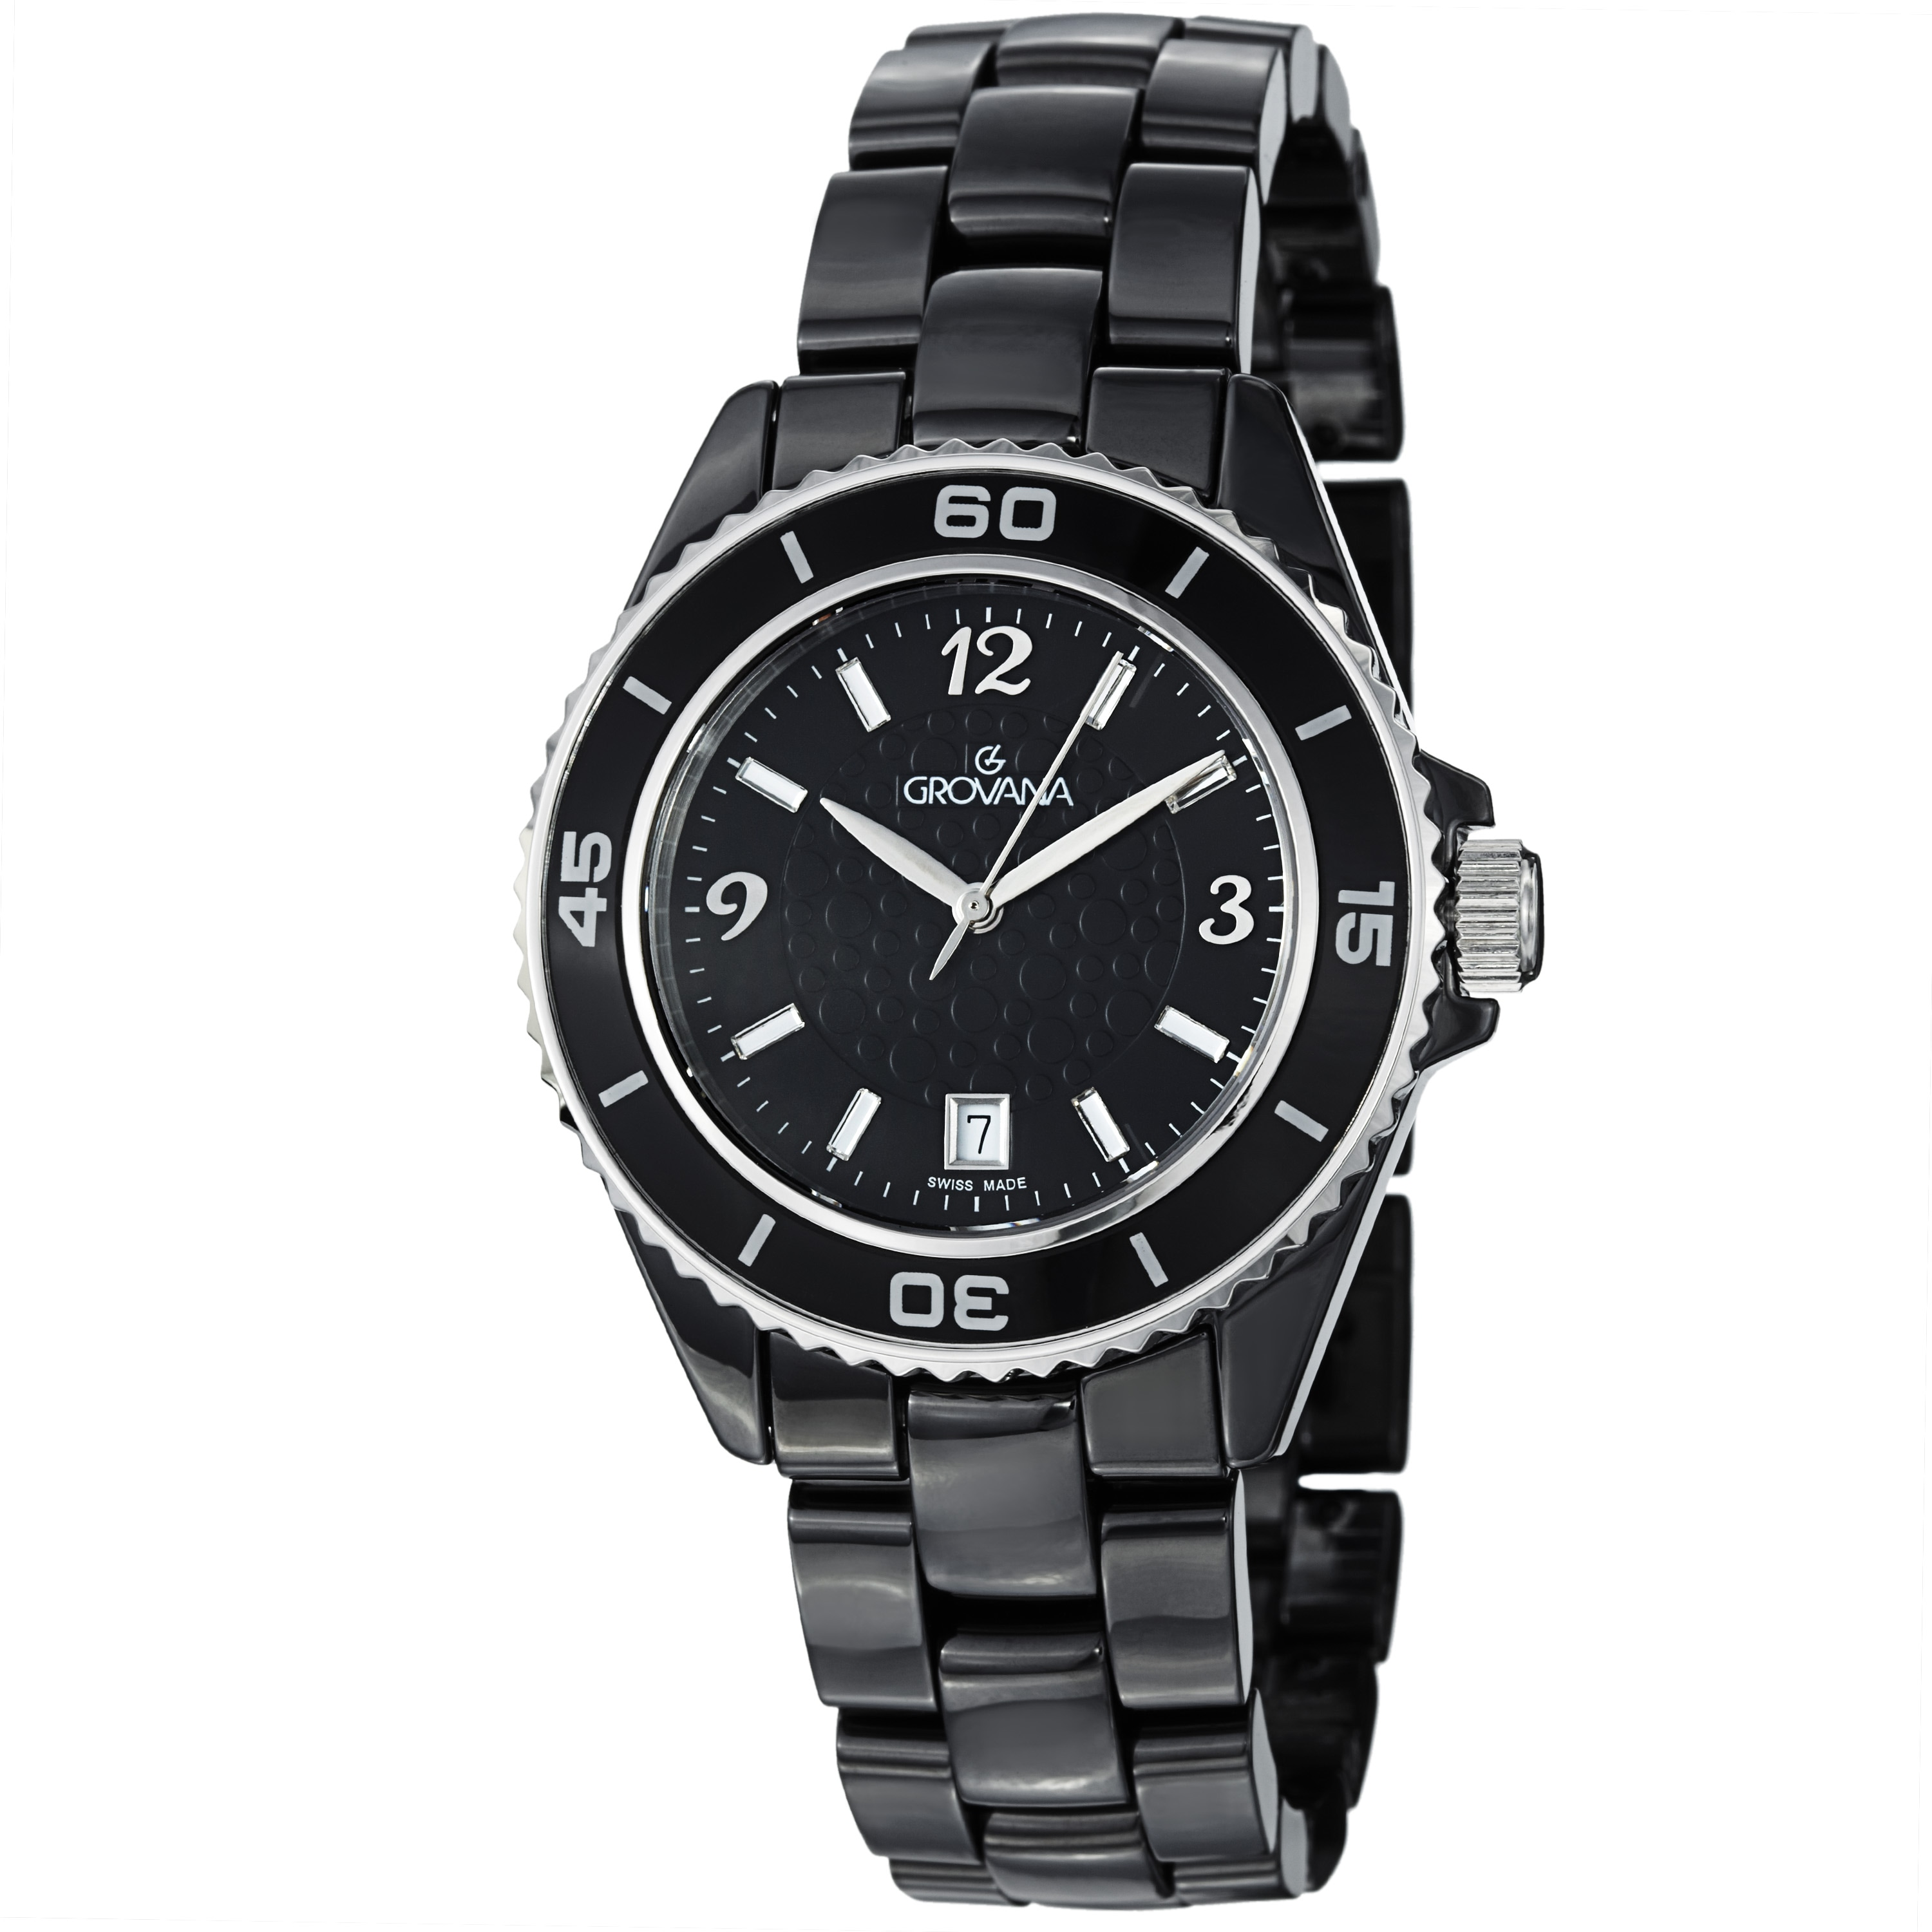 Grovana Men's Black Dial Black Ceramic Bracelet Quartz Watch